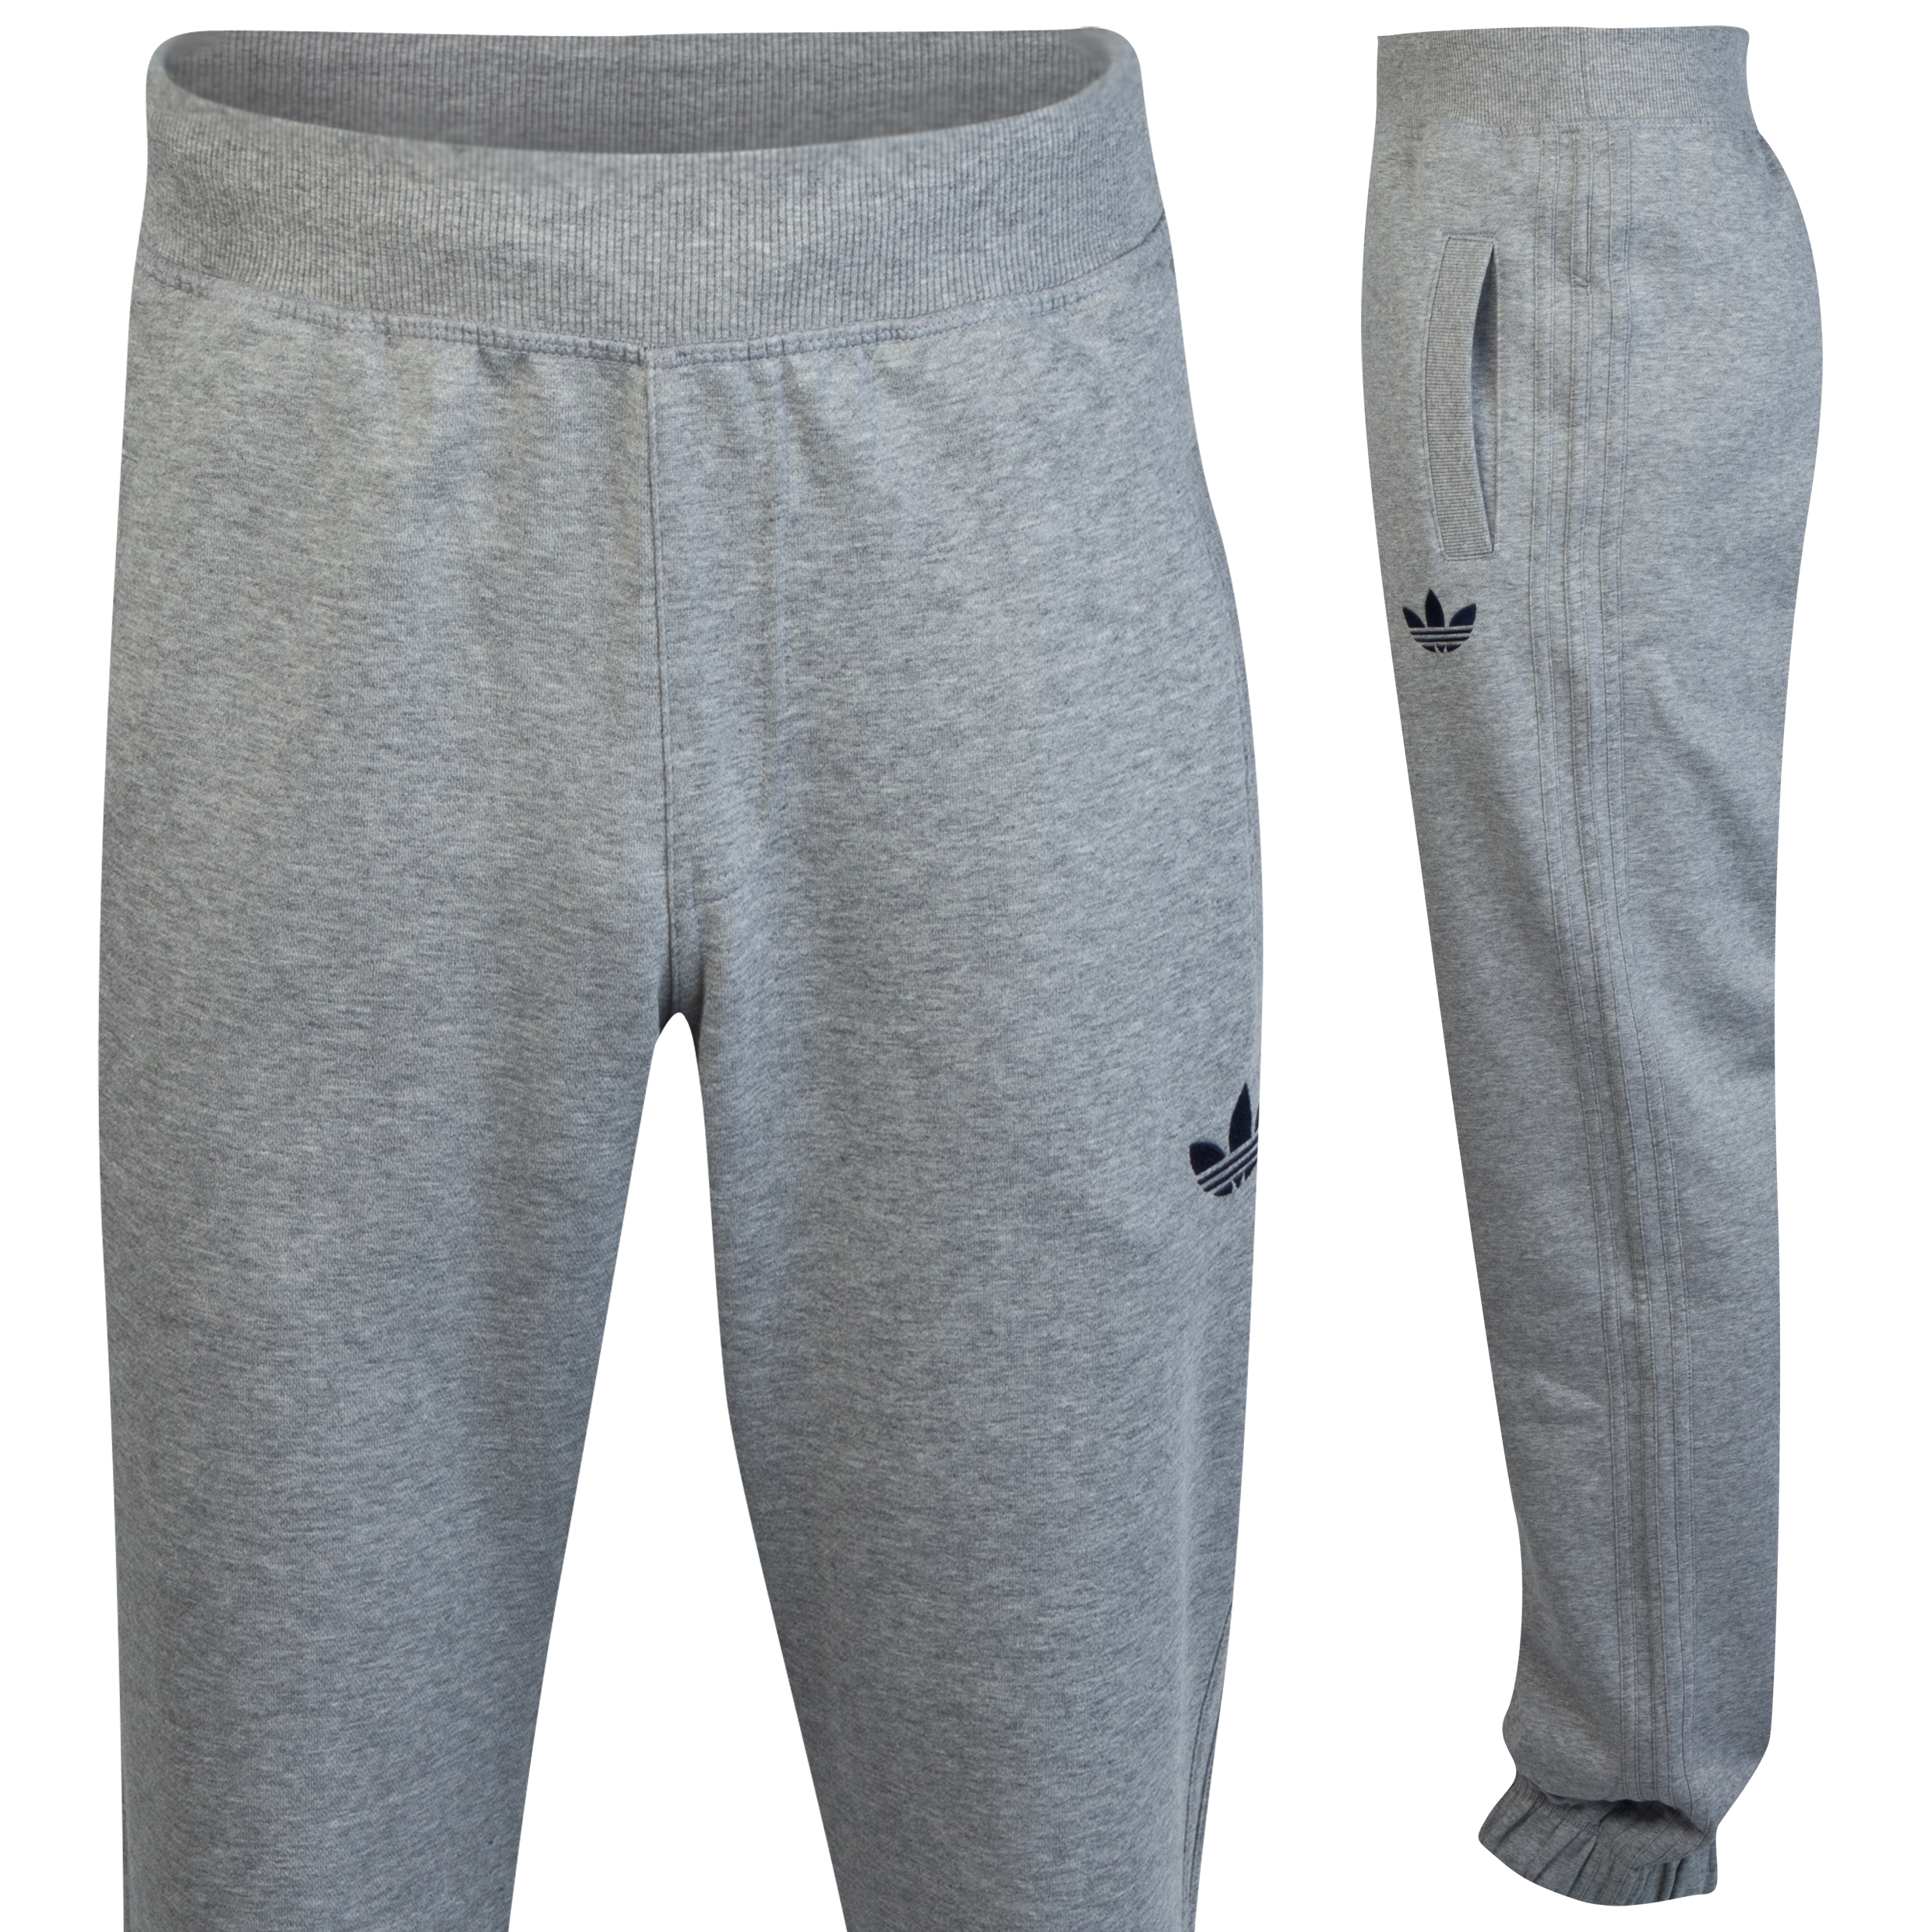 Originals Fleece Pant - Medium Grey Heather